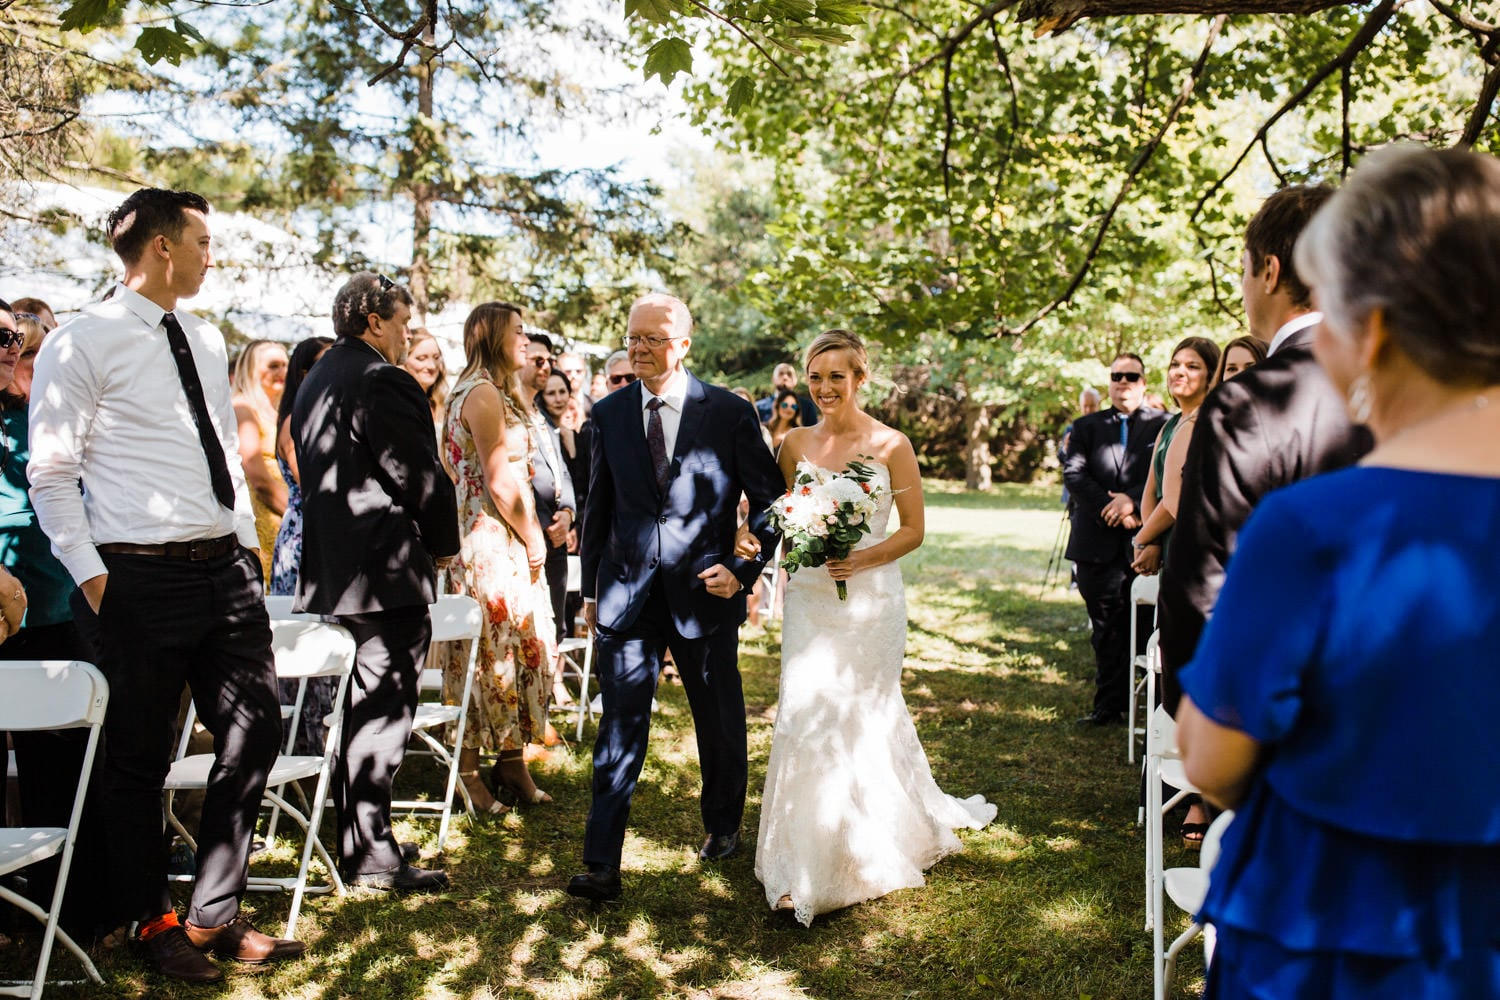 bride walks down aisle under trees - fairfield heritage house wedding